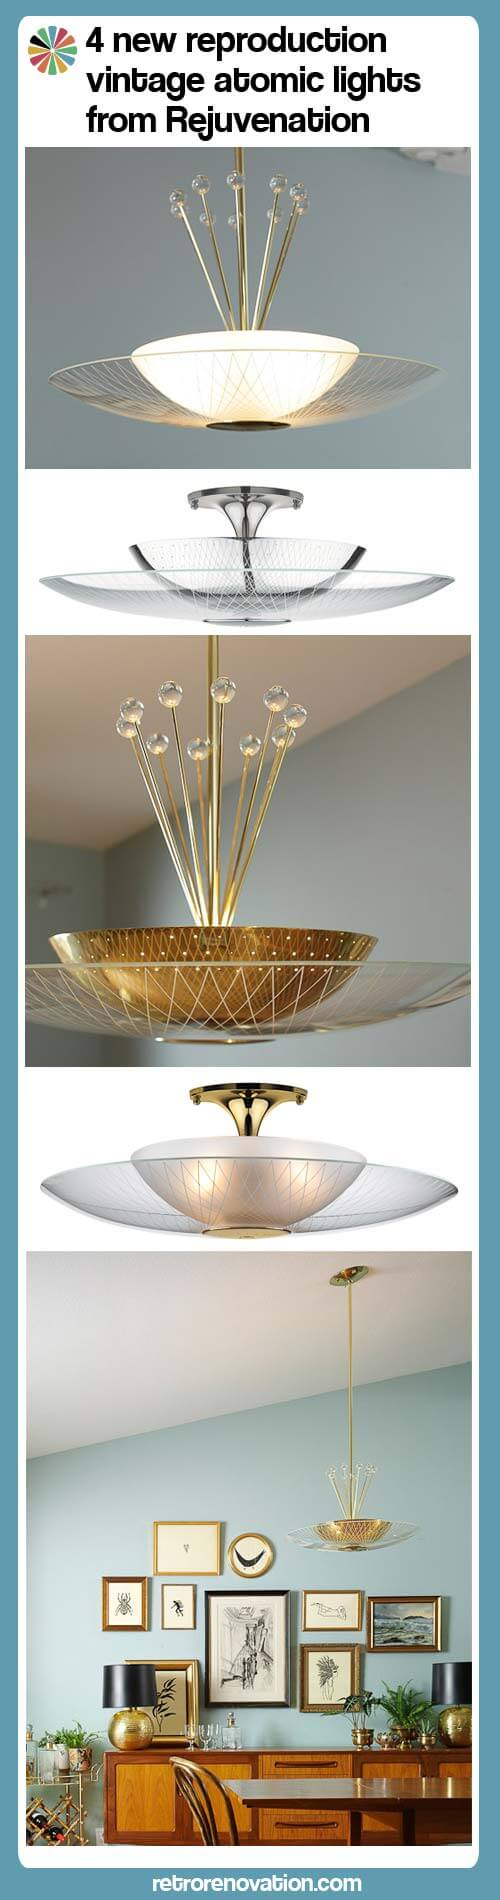 vintage atomic retro midcentury ceiling lights